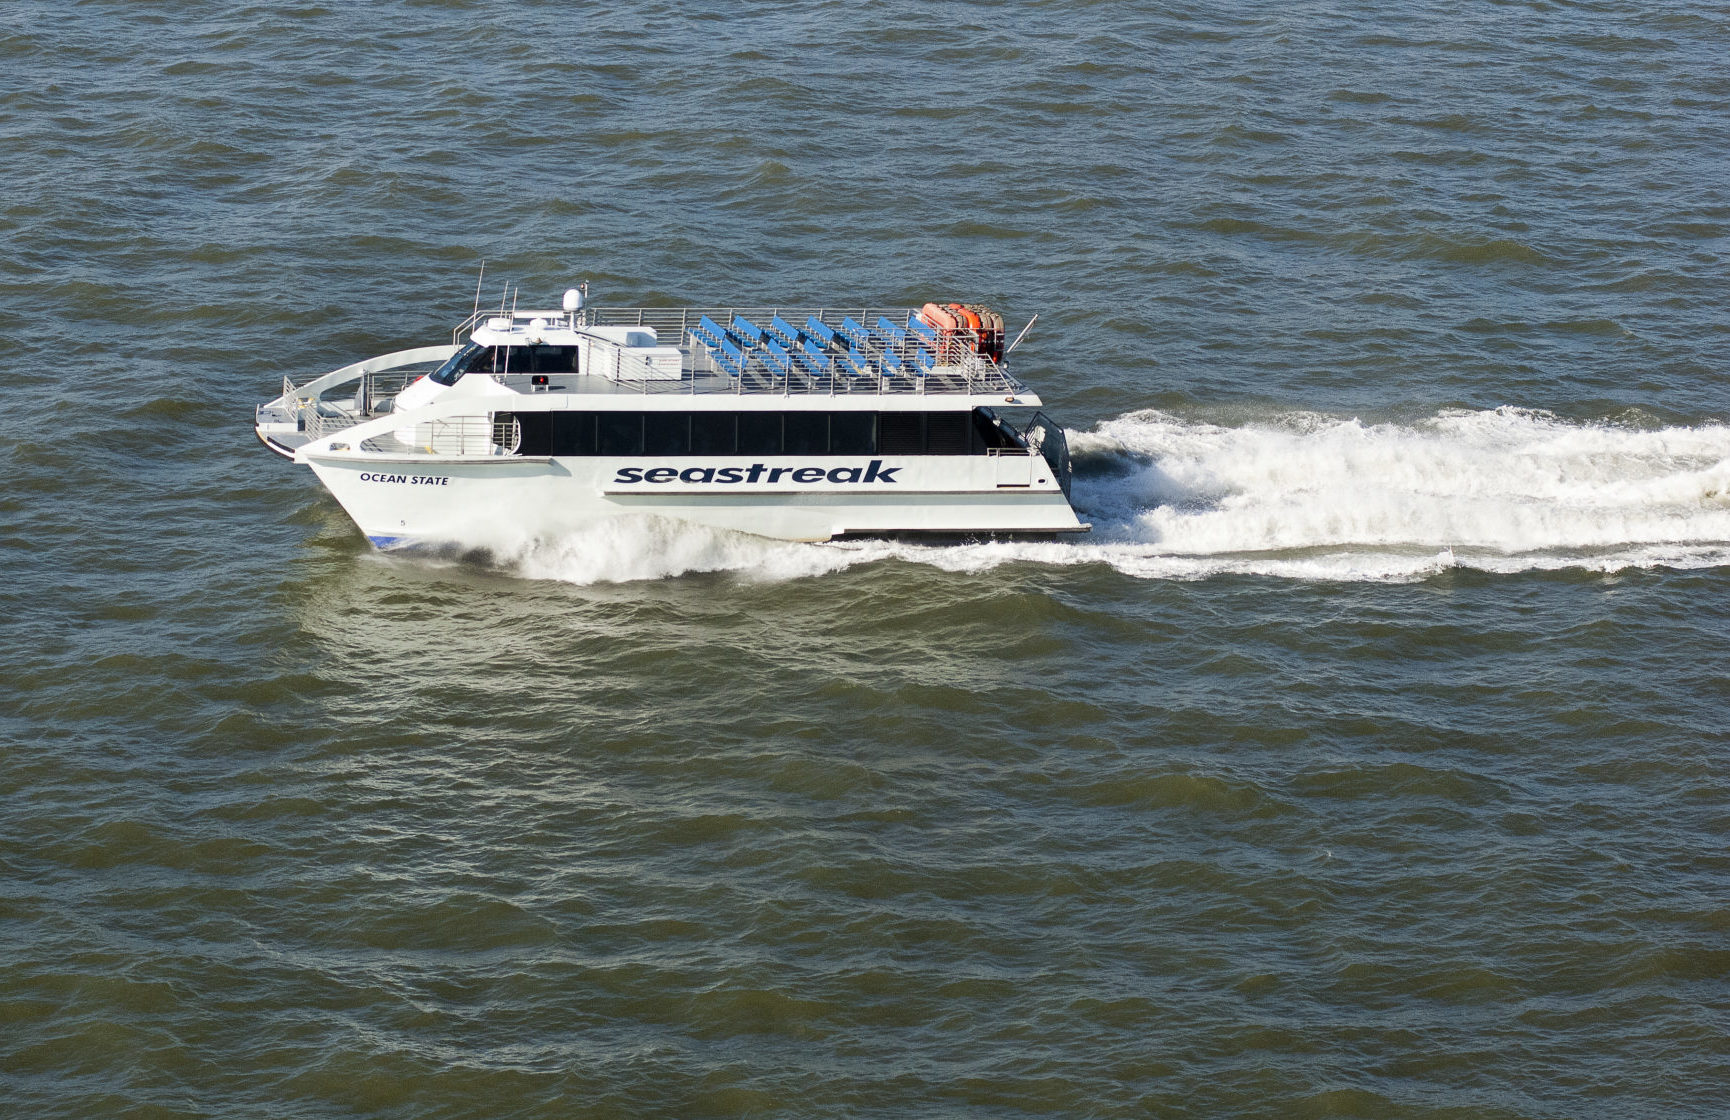 megabus adds seastreak ferry service stops - providence business news